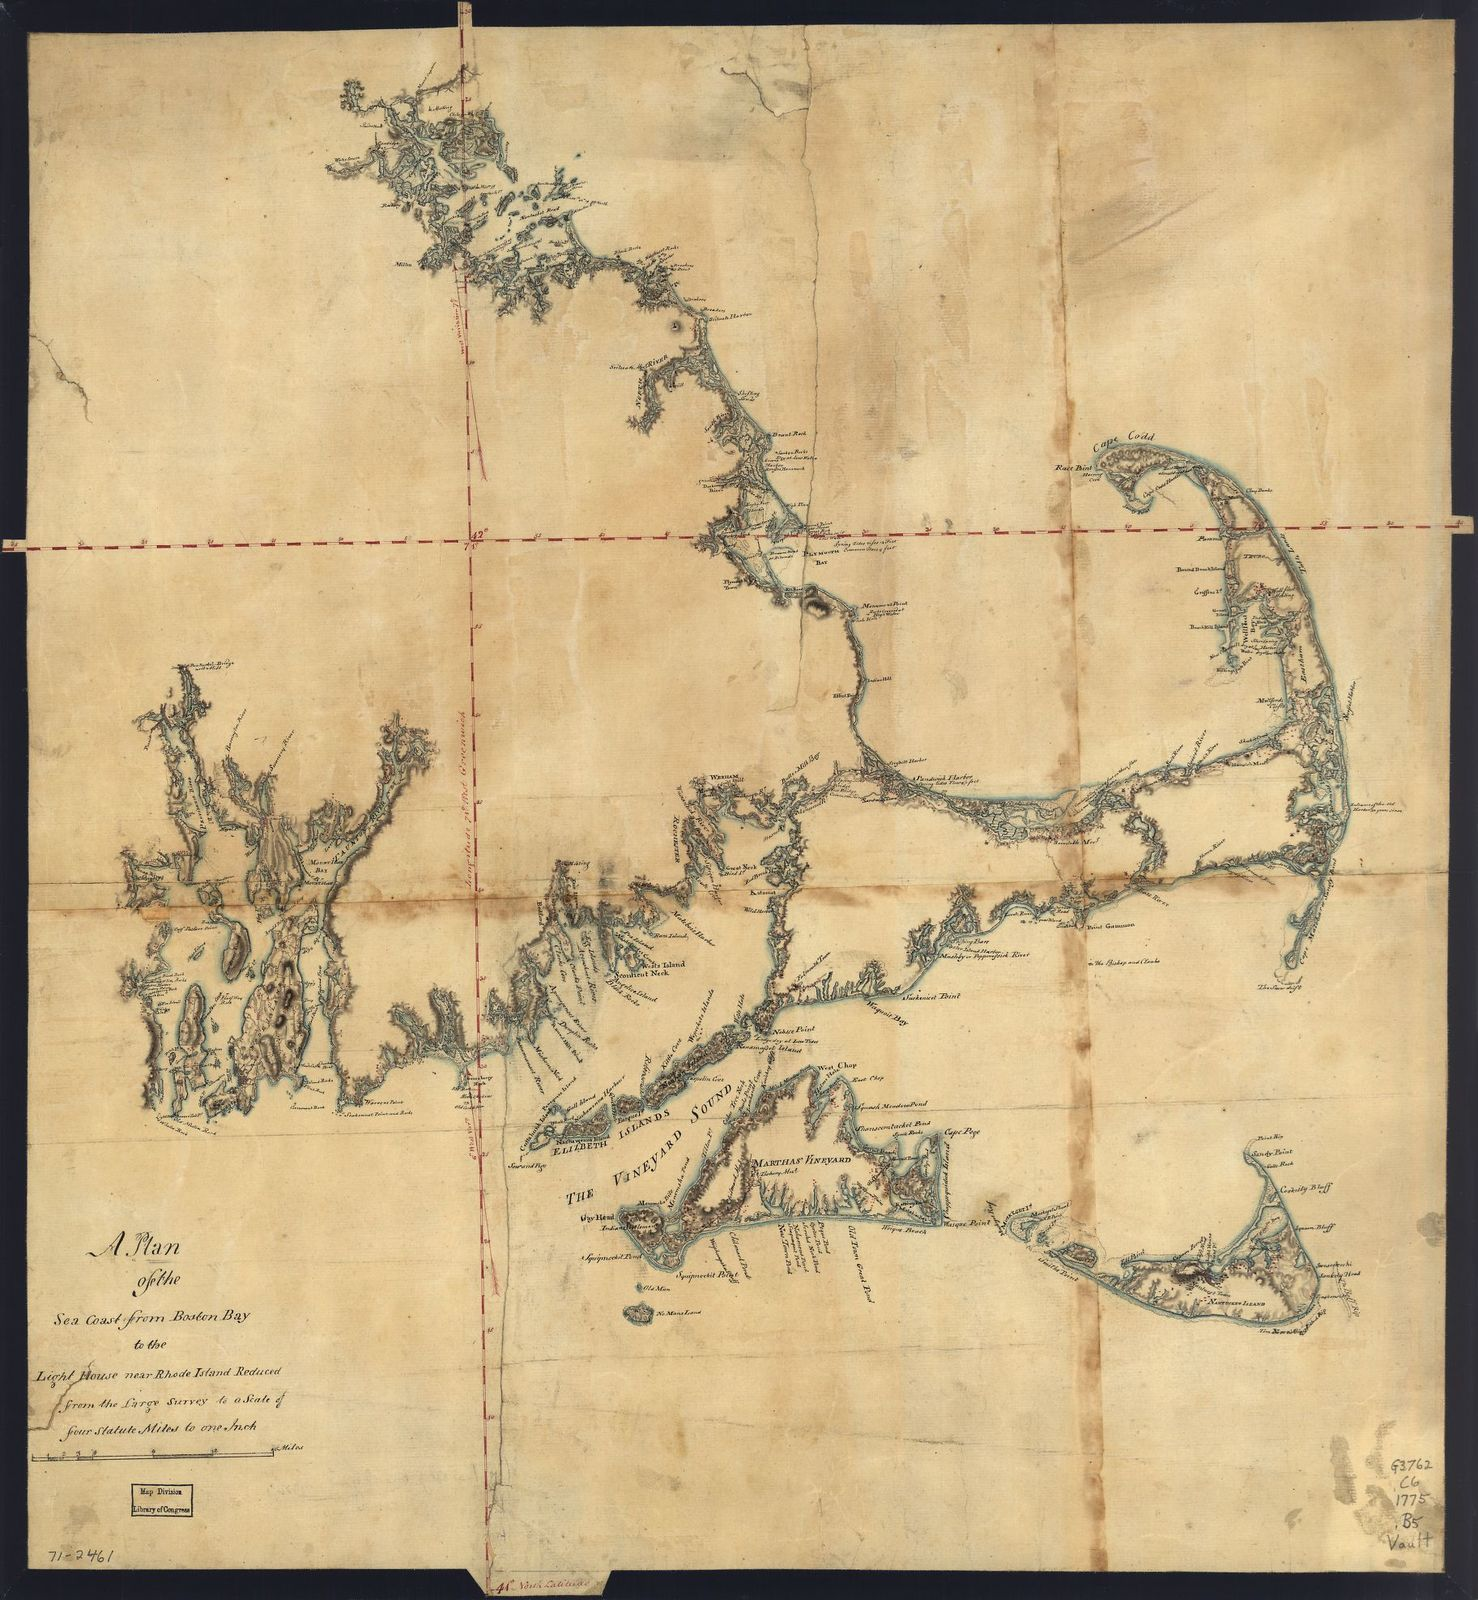 A plan of the sea coast from Boston Bay to the light house near Rhode Island, reduced from the large survey.